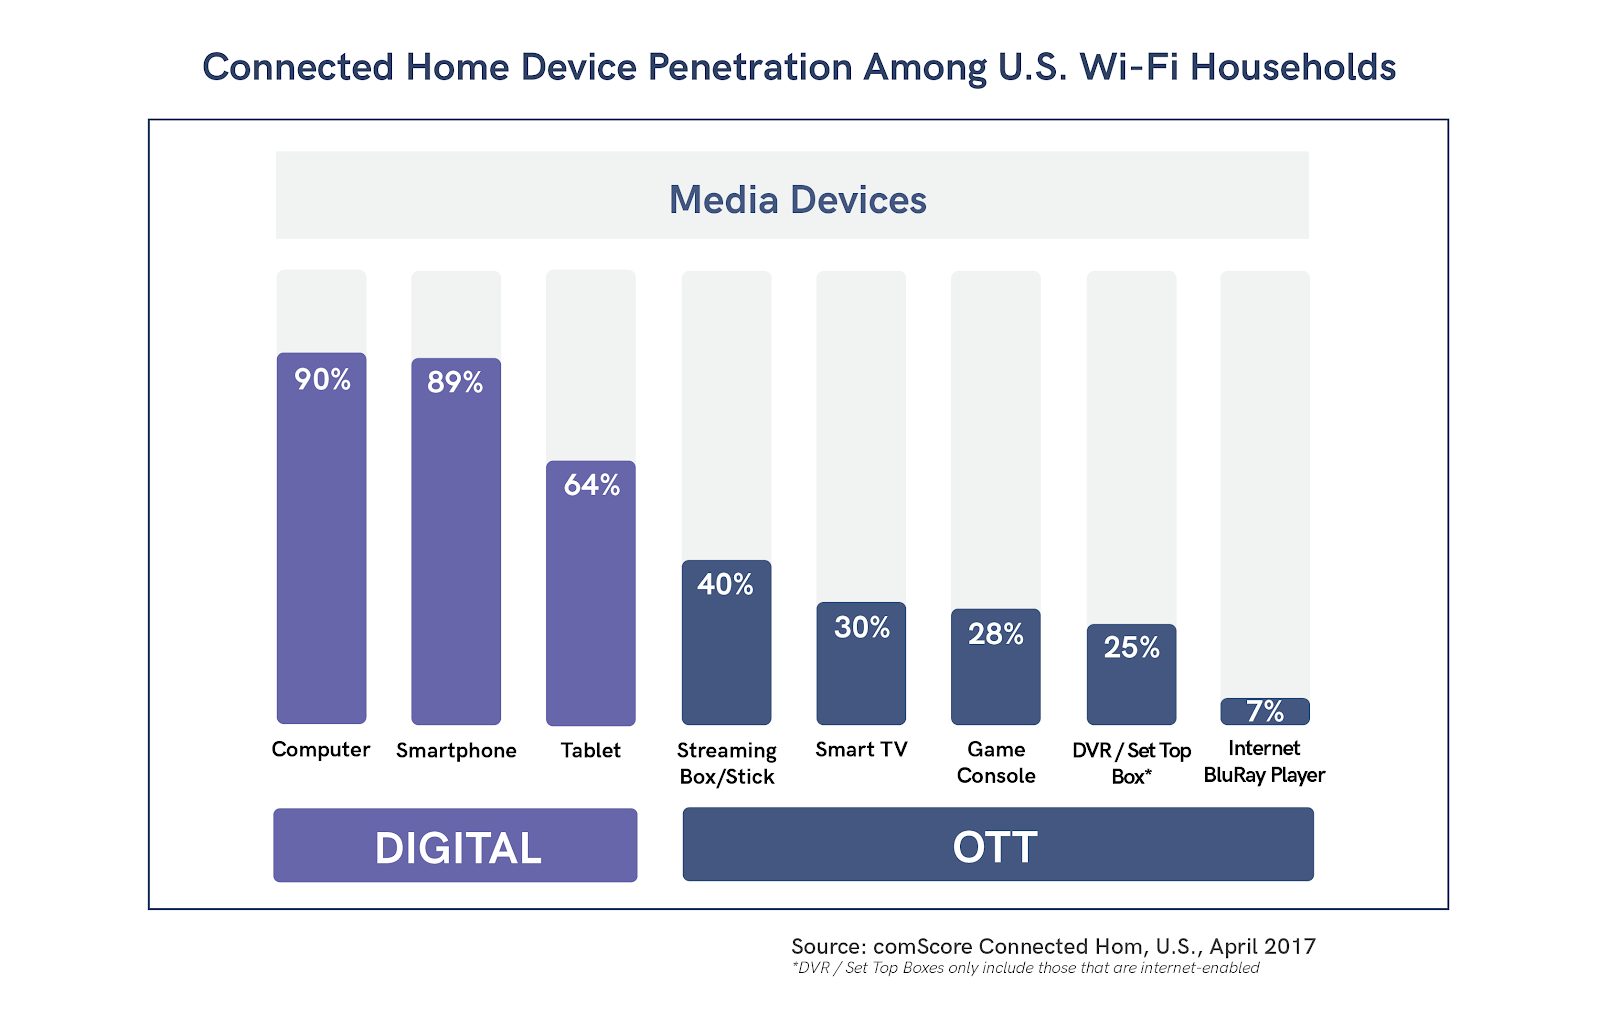 50% of US homes connected to Wifi use OTT video apps